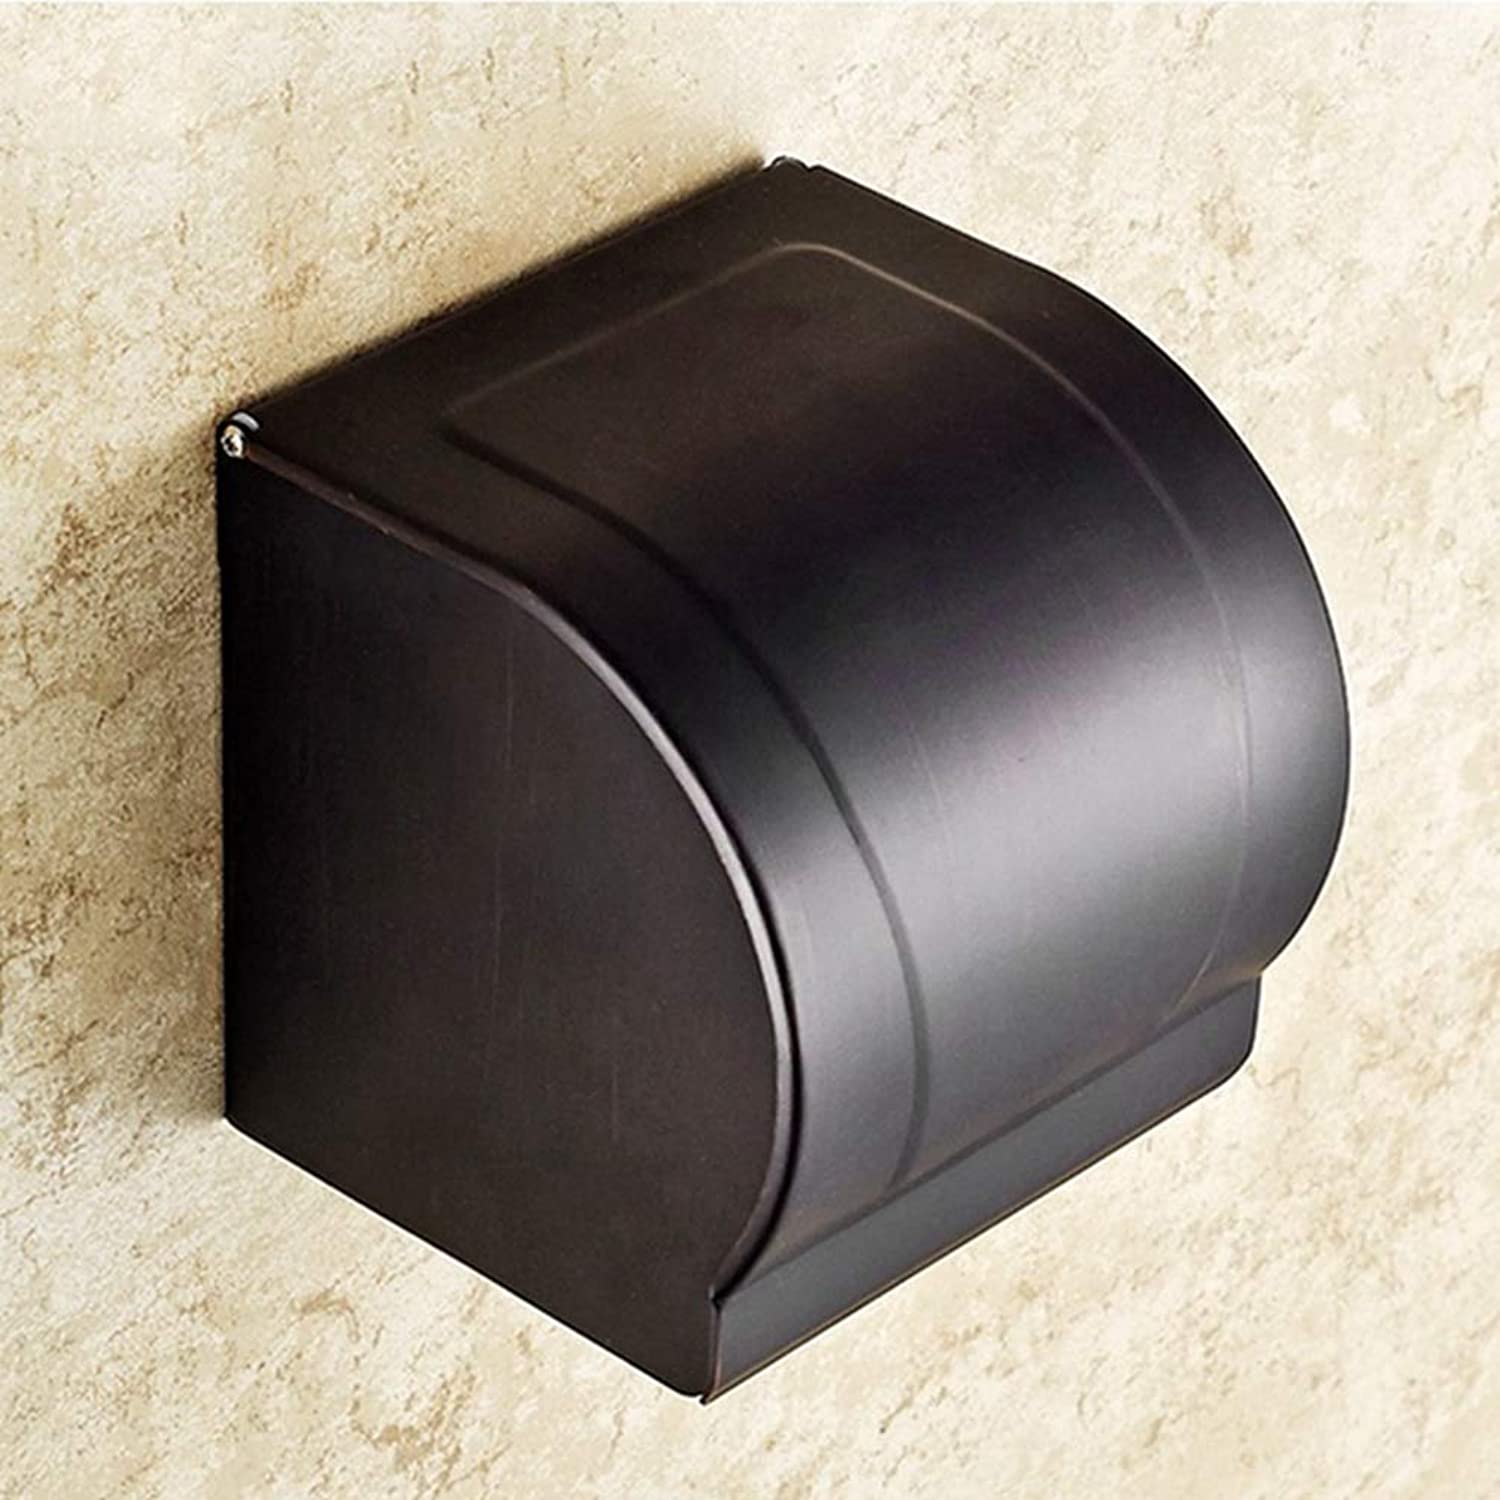 LUDSUY Bathroom Accessories Bathroom Toilet Paper Holder Roll Tissue Box Bathroom Kitchen Wall Mounted Roll Paper Holder Home Decoration